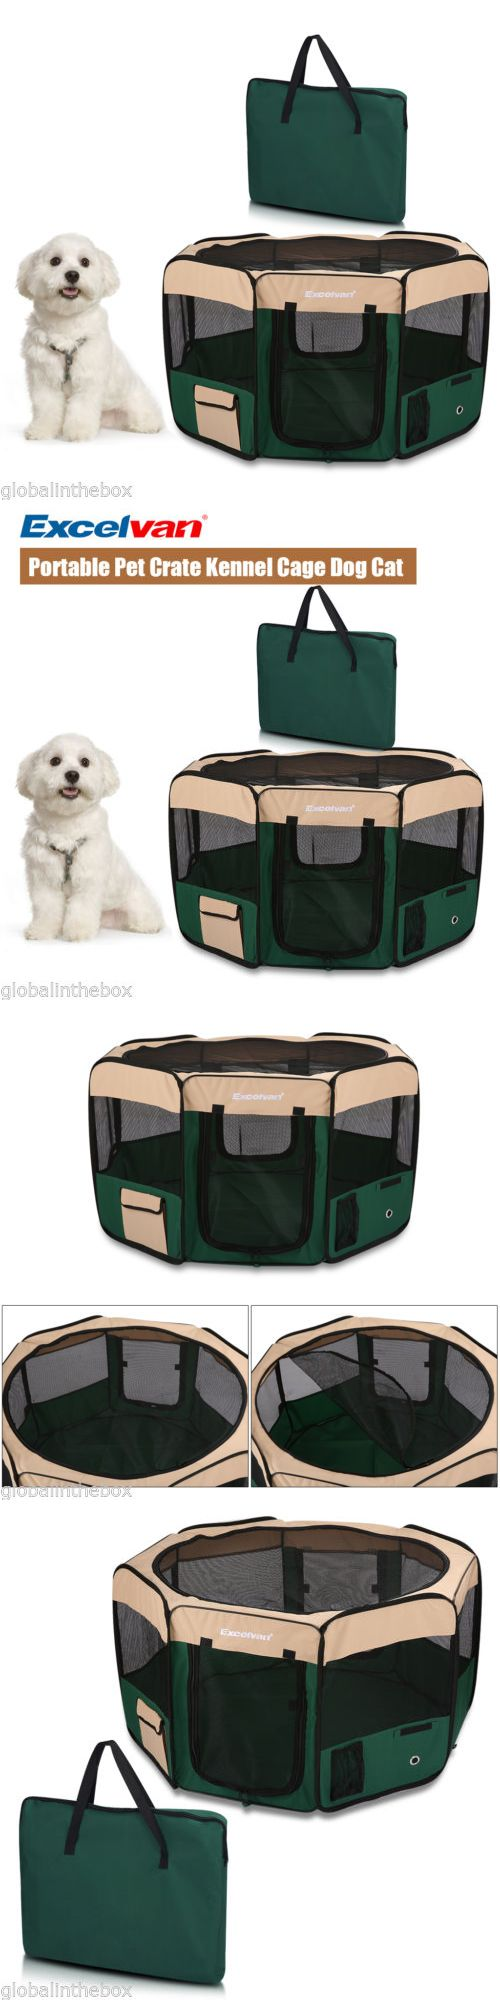 Protective Gear 36260: Pet Puppy Cage Dog Cat Playpen Soft Fabric Enclosure Fence Tent House M Foldable -> BUY IT NOW ONLY: $34.99 on eBay!